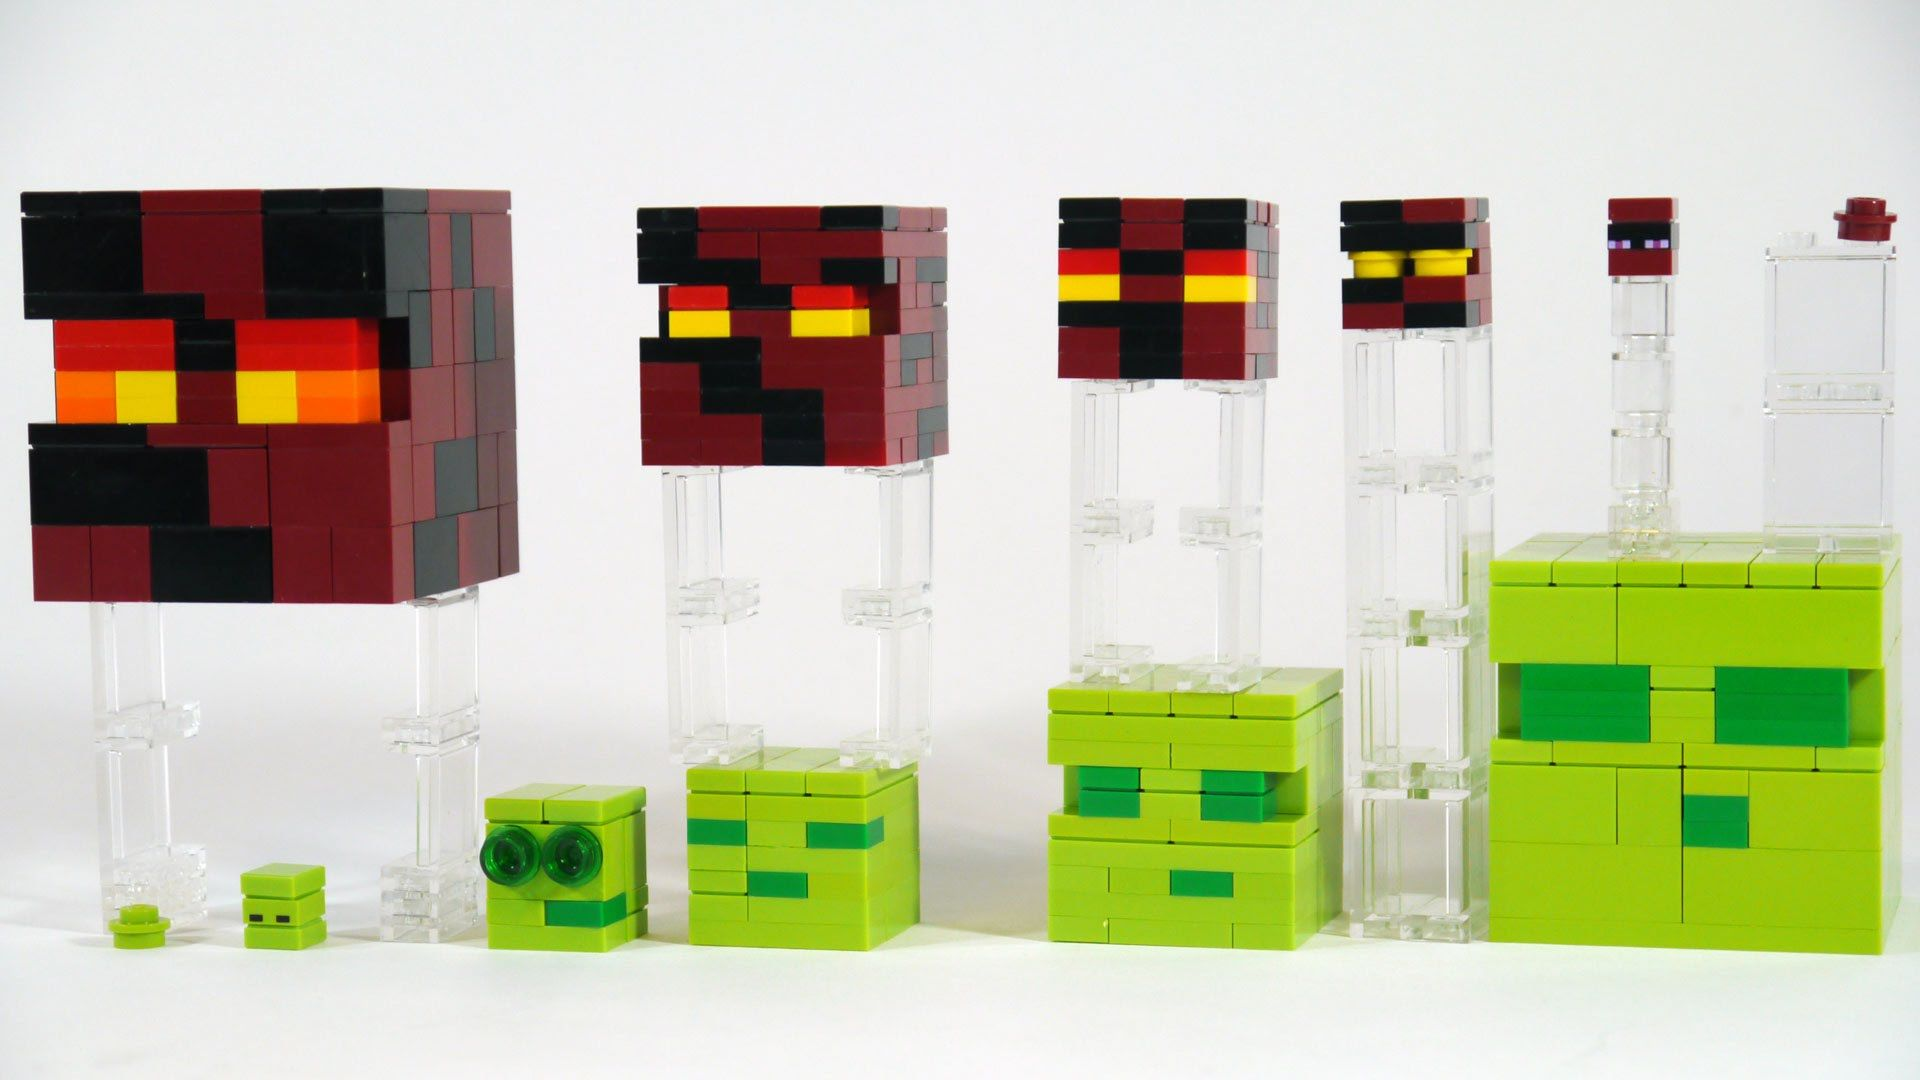 Instructions On How To Make Slimes Magma Cubes From Minecraft Out